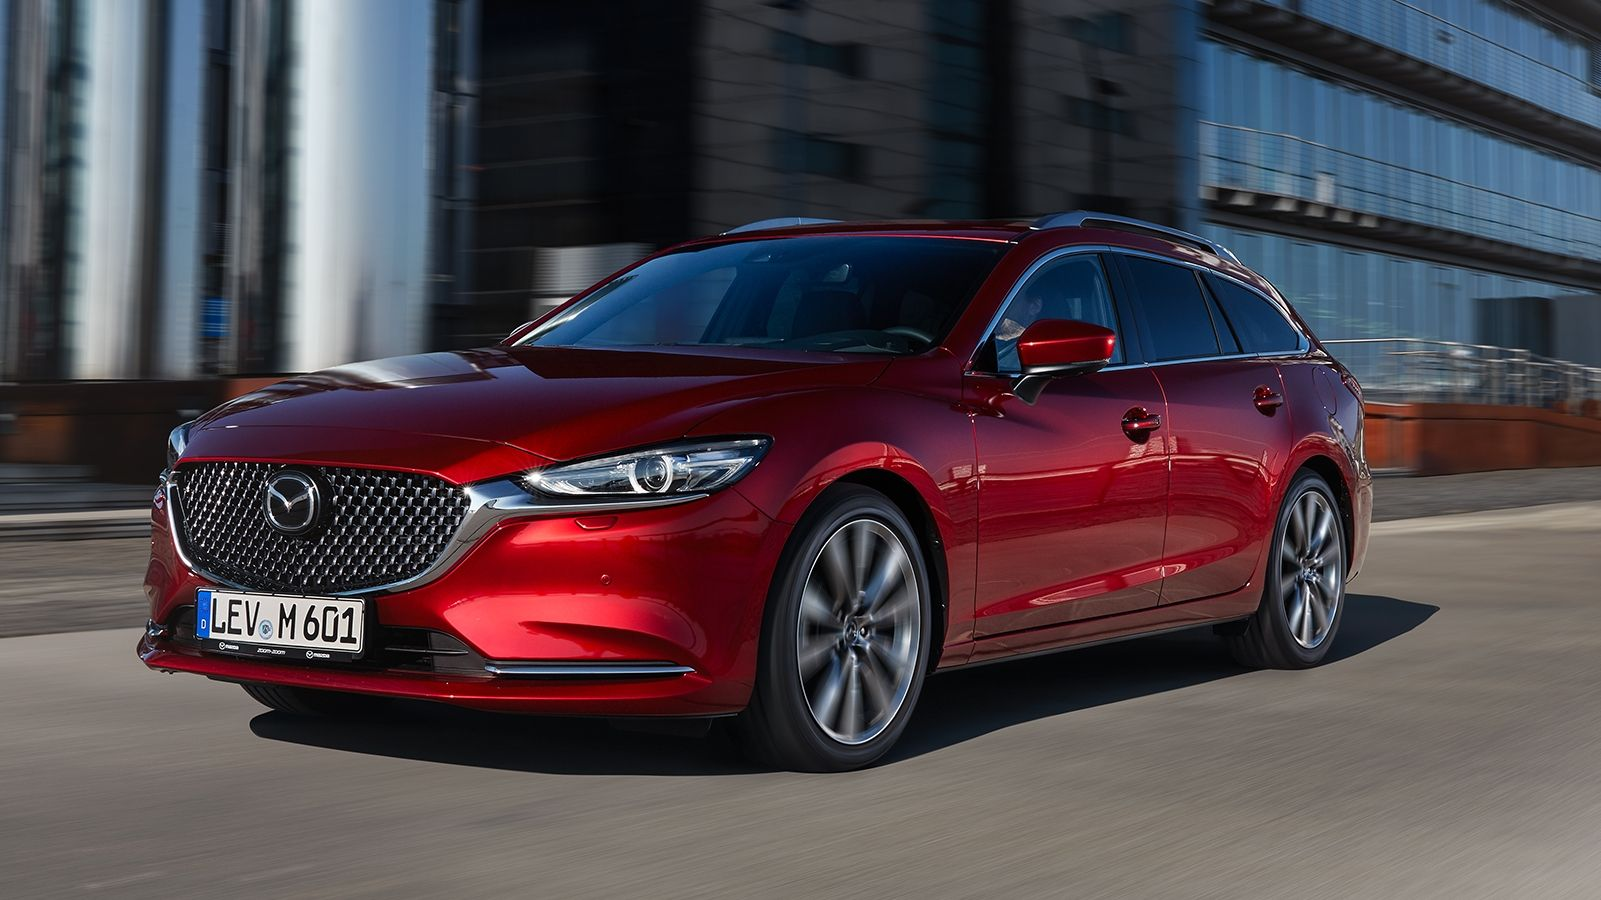 The Mazda6 Wagon Puts The New Mercedes C Class Estate To Shame Top Speed Mazda 6 Wagon New Mercedes C Class Mazda 6 Tourer